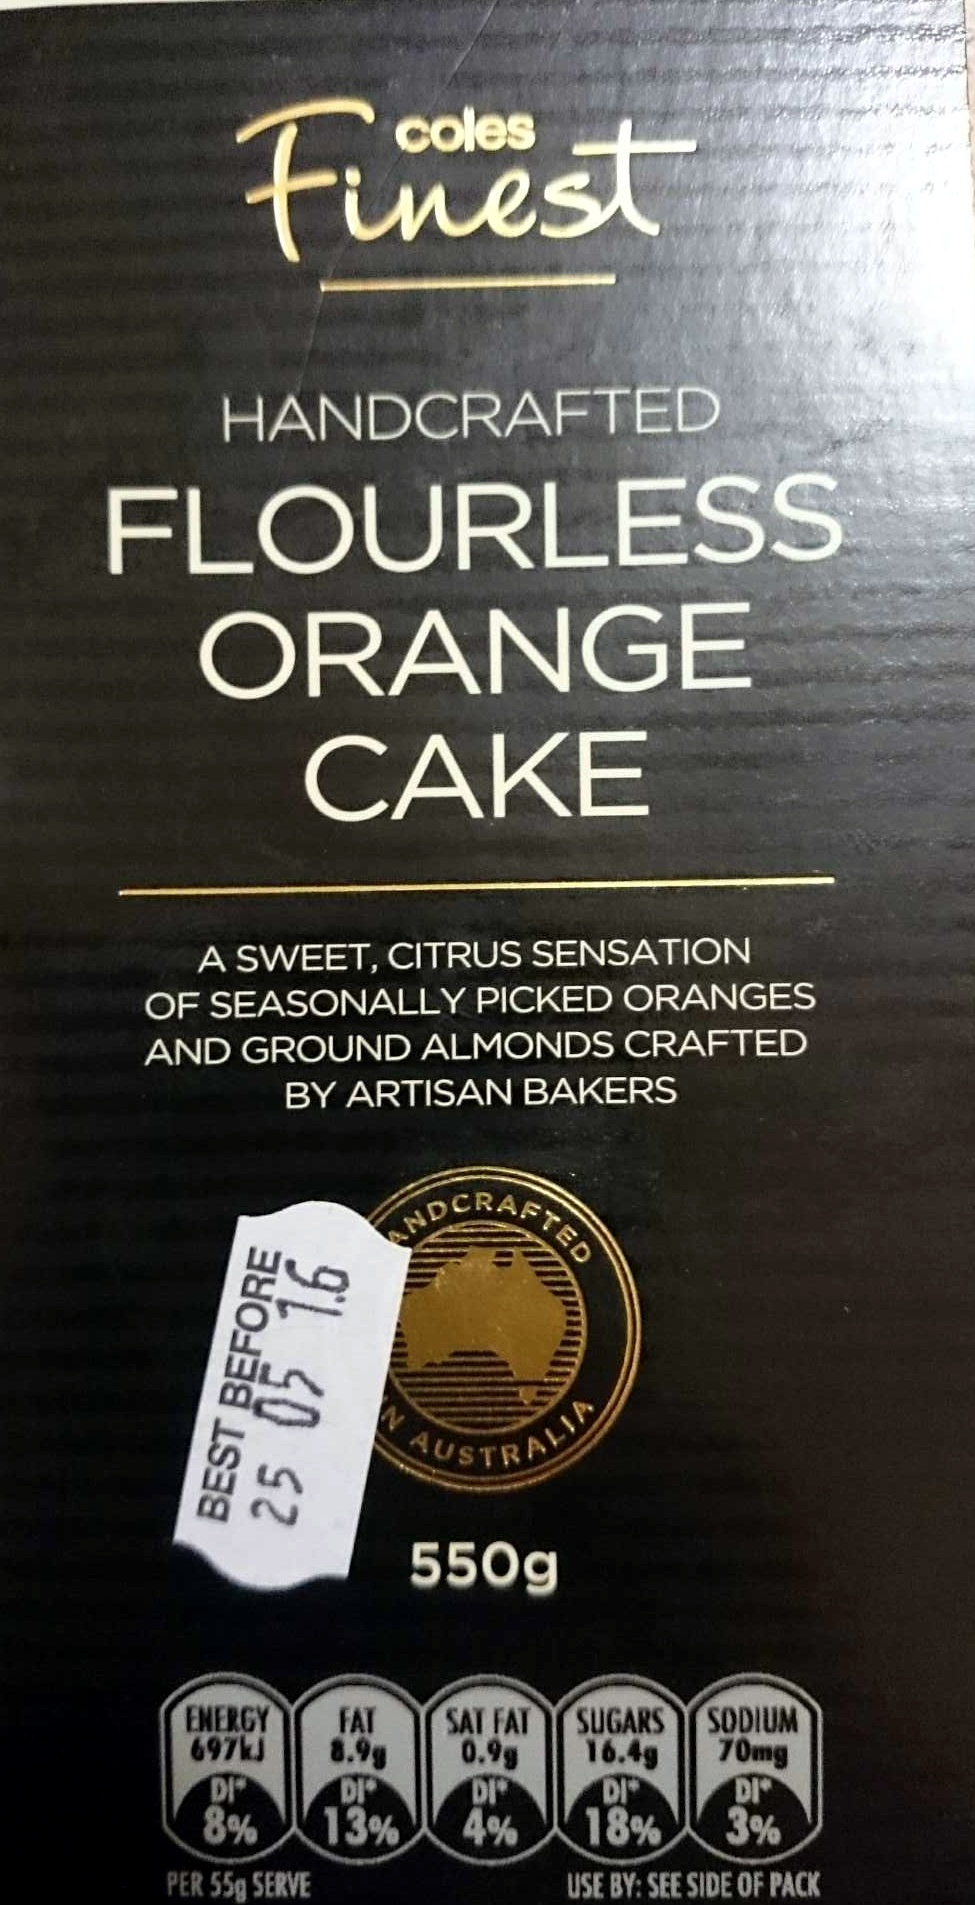 Handcrafted Flourless Orange Cake - Coles Finest - 550g